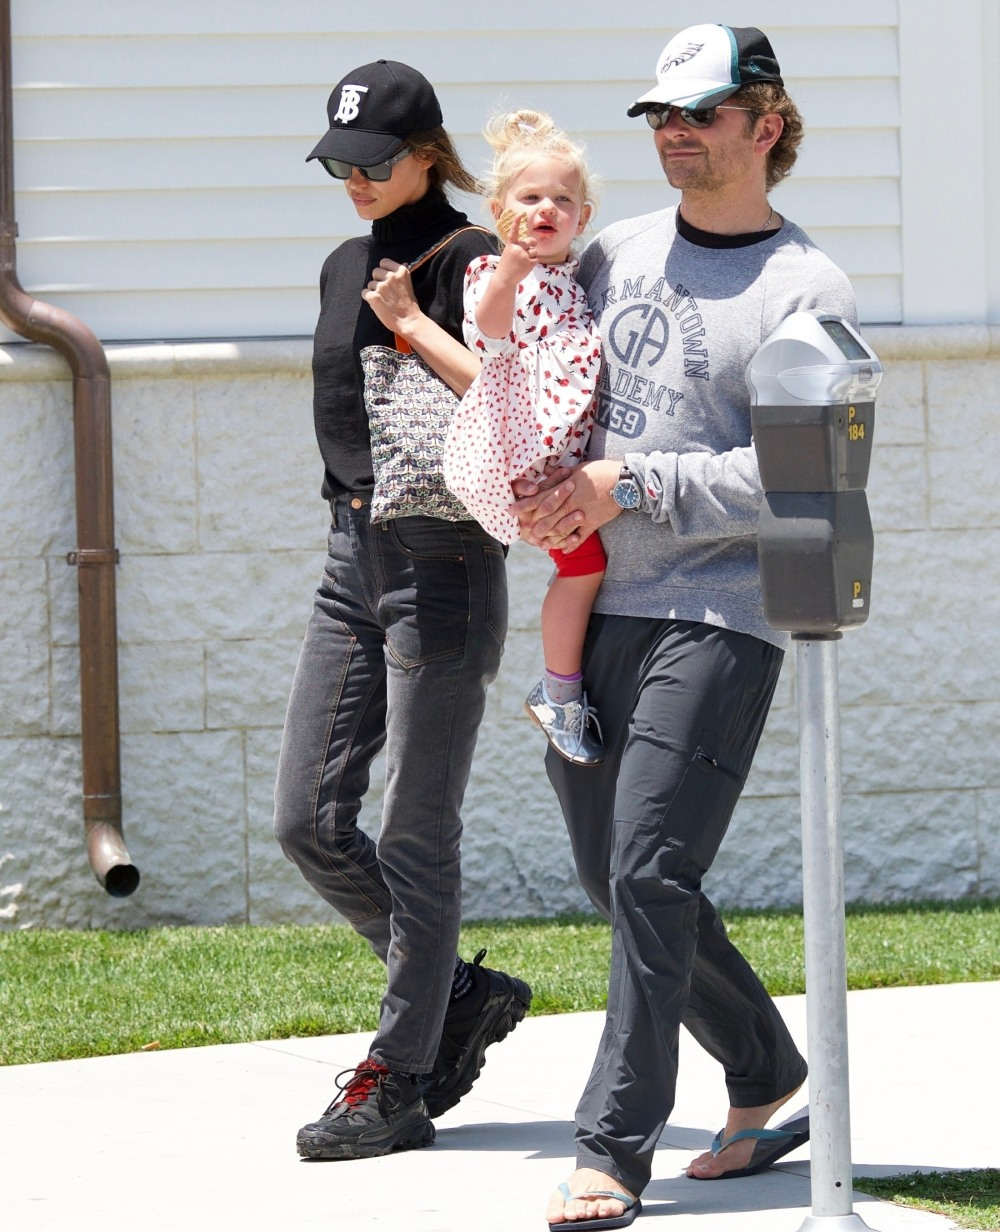 Bradley Cooper and Irina Shayk take their  daughter out for ice cream in Brentwood